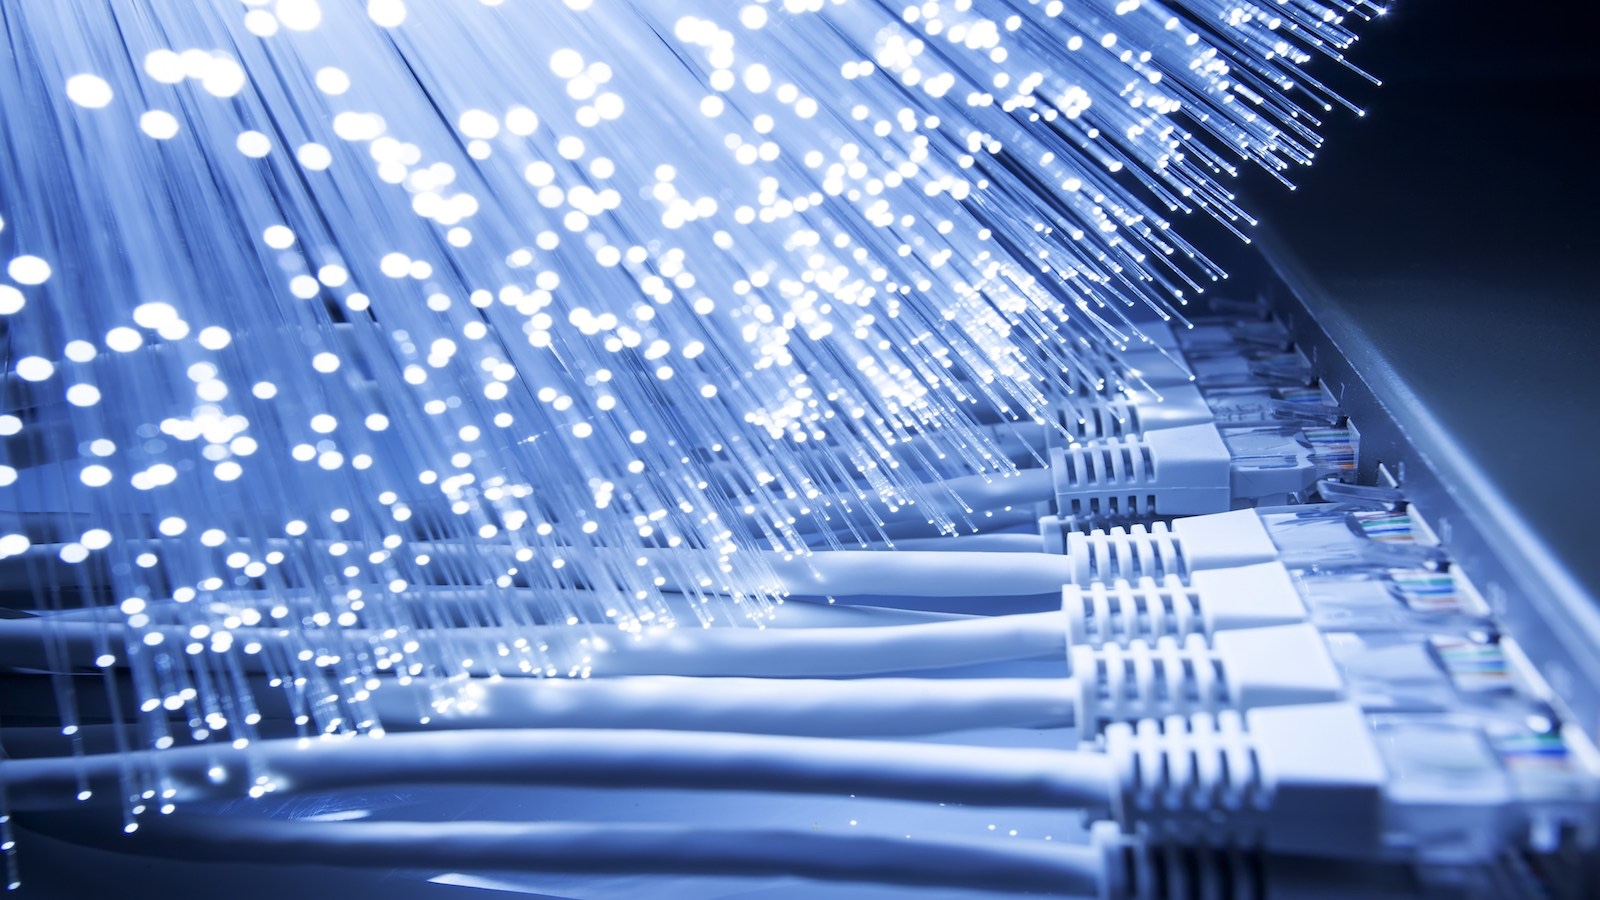 319TBPs World Record Internet Speed Achieved by Japanese Telecoms Engineers